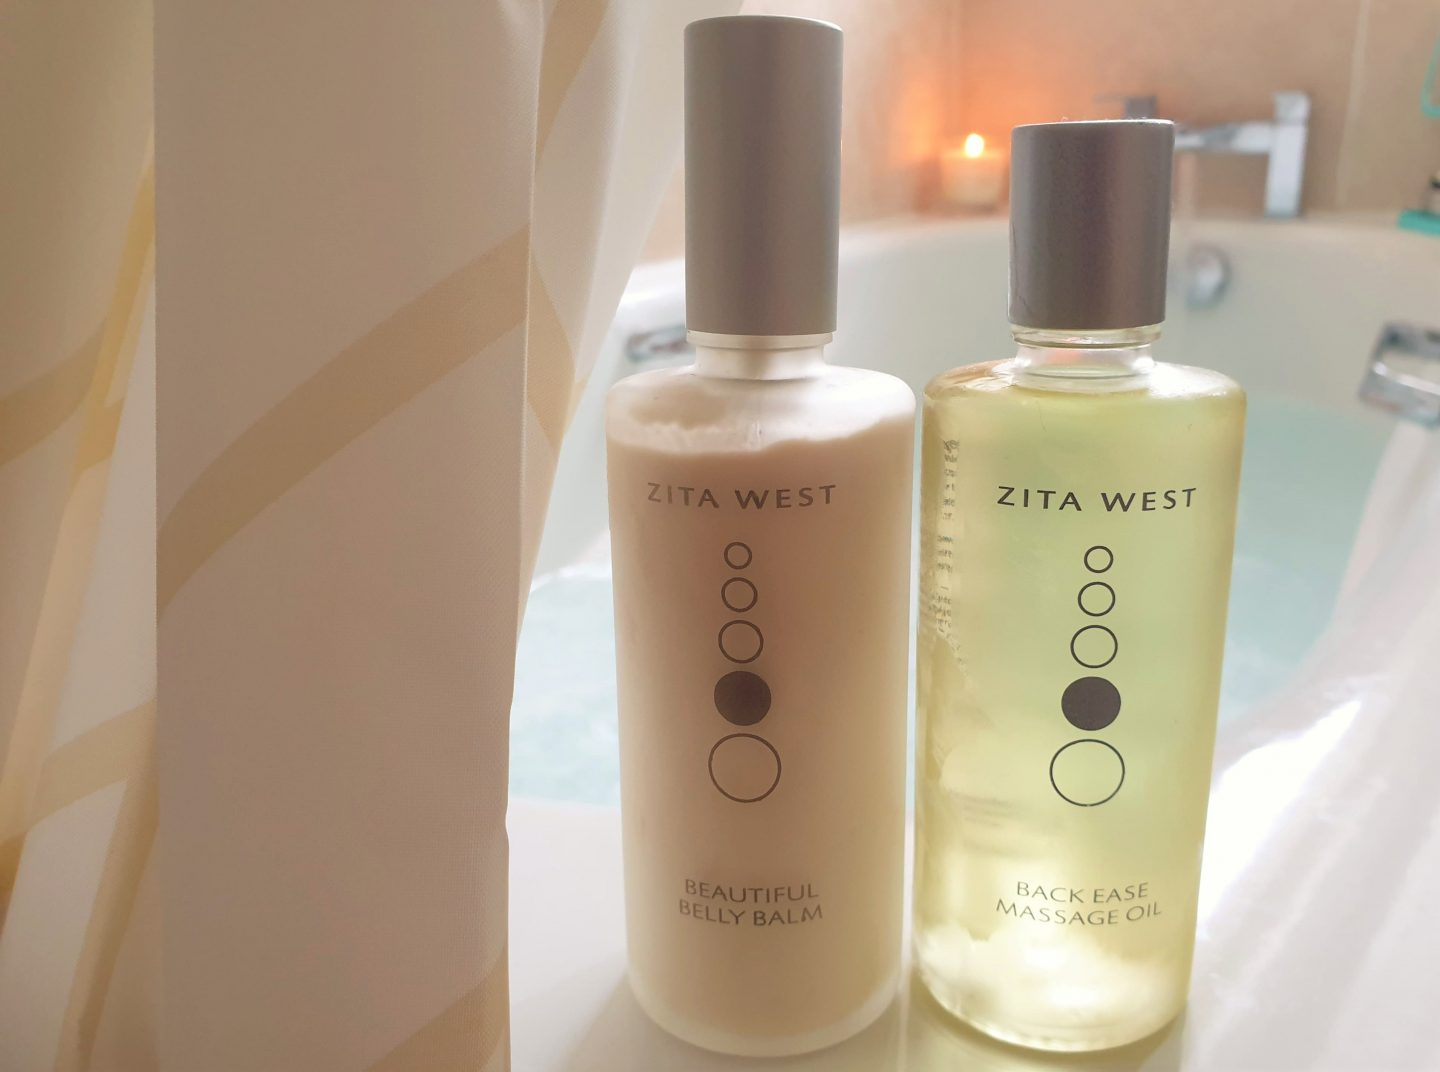 Zita West bump cream and massage oil